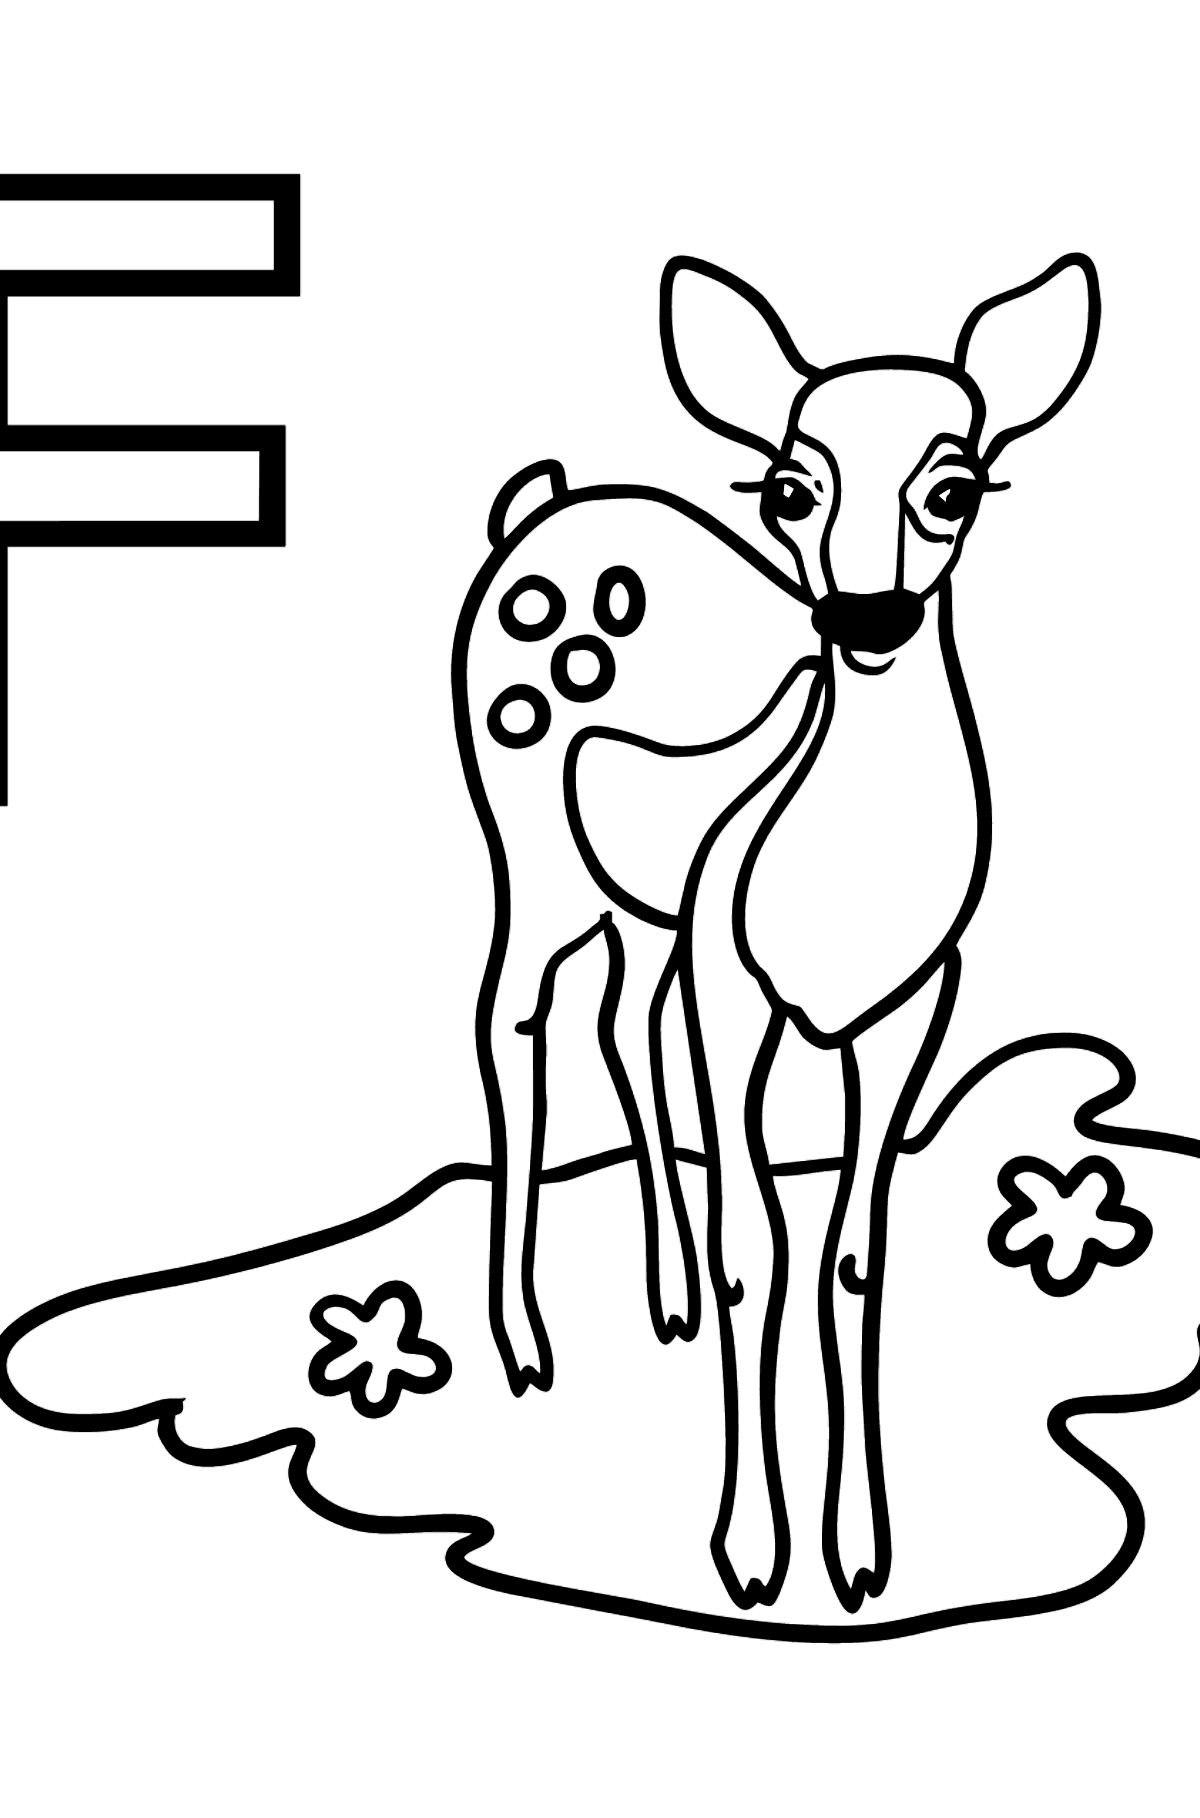 French Letter F coloring pages - FAON - Coloring Pages for Kids